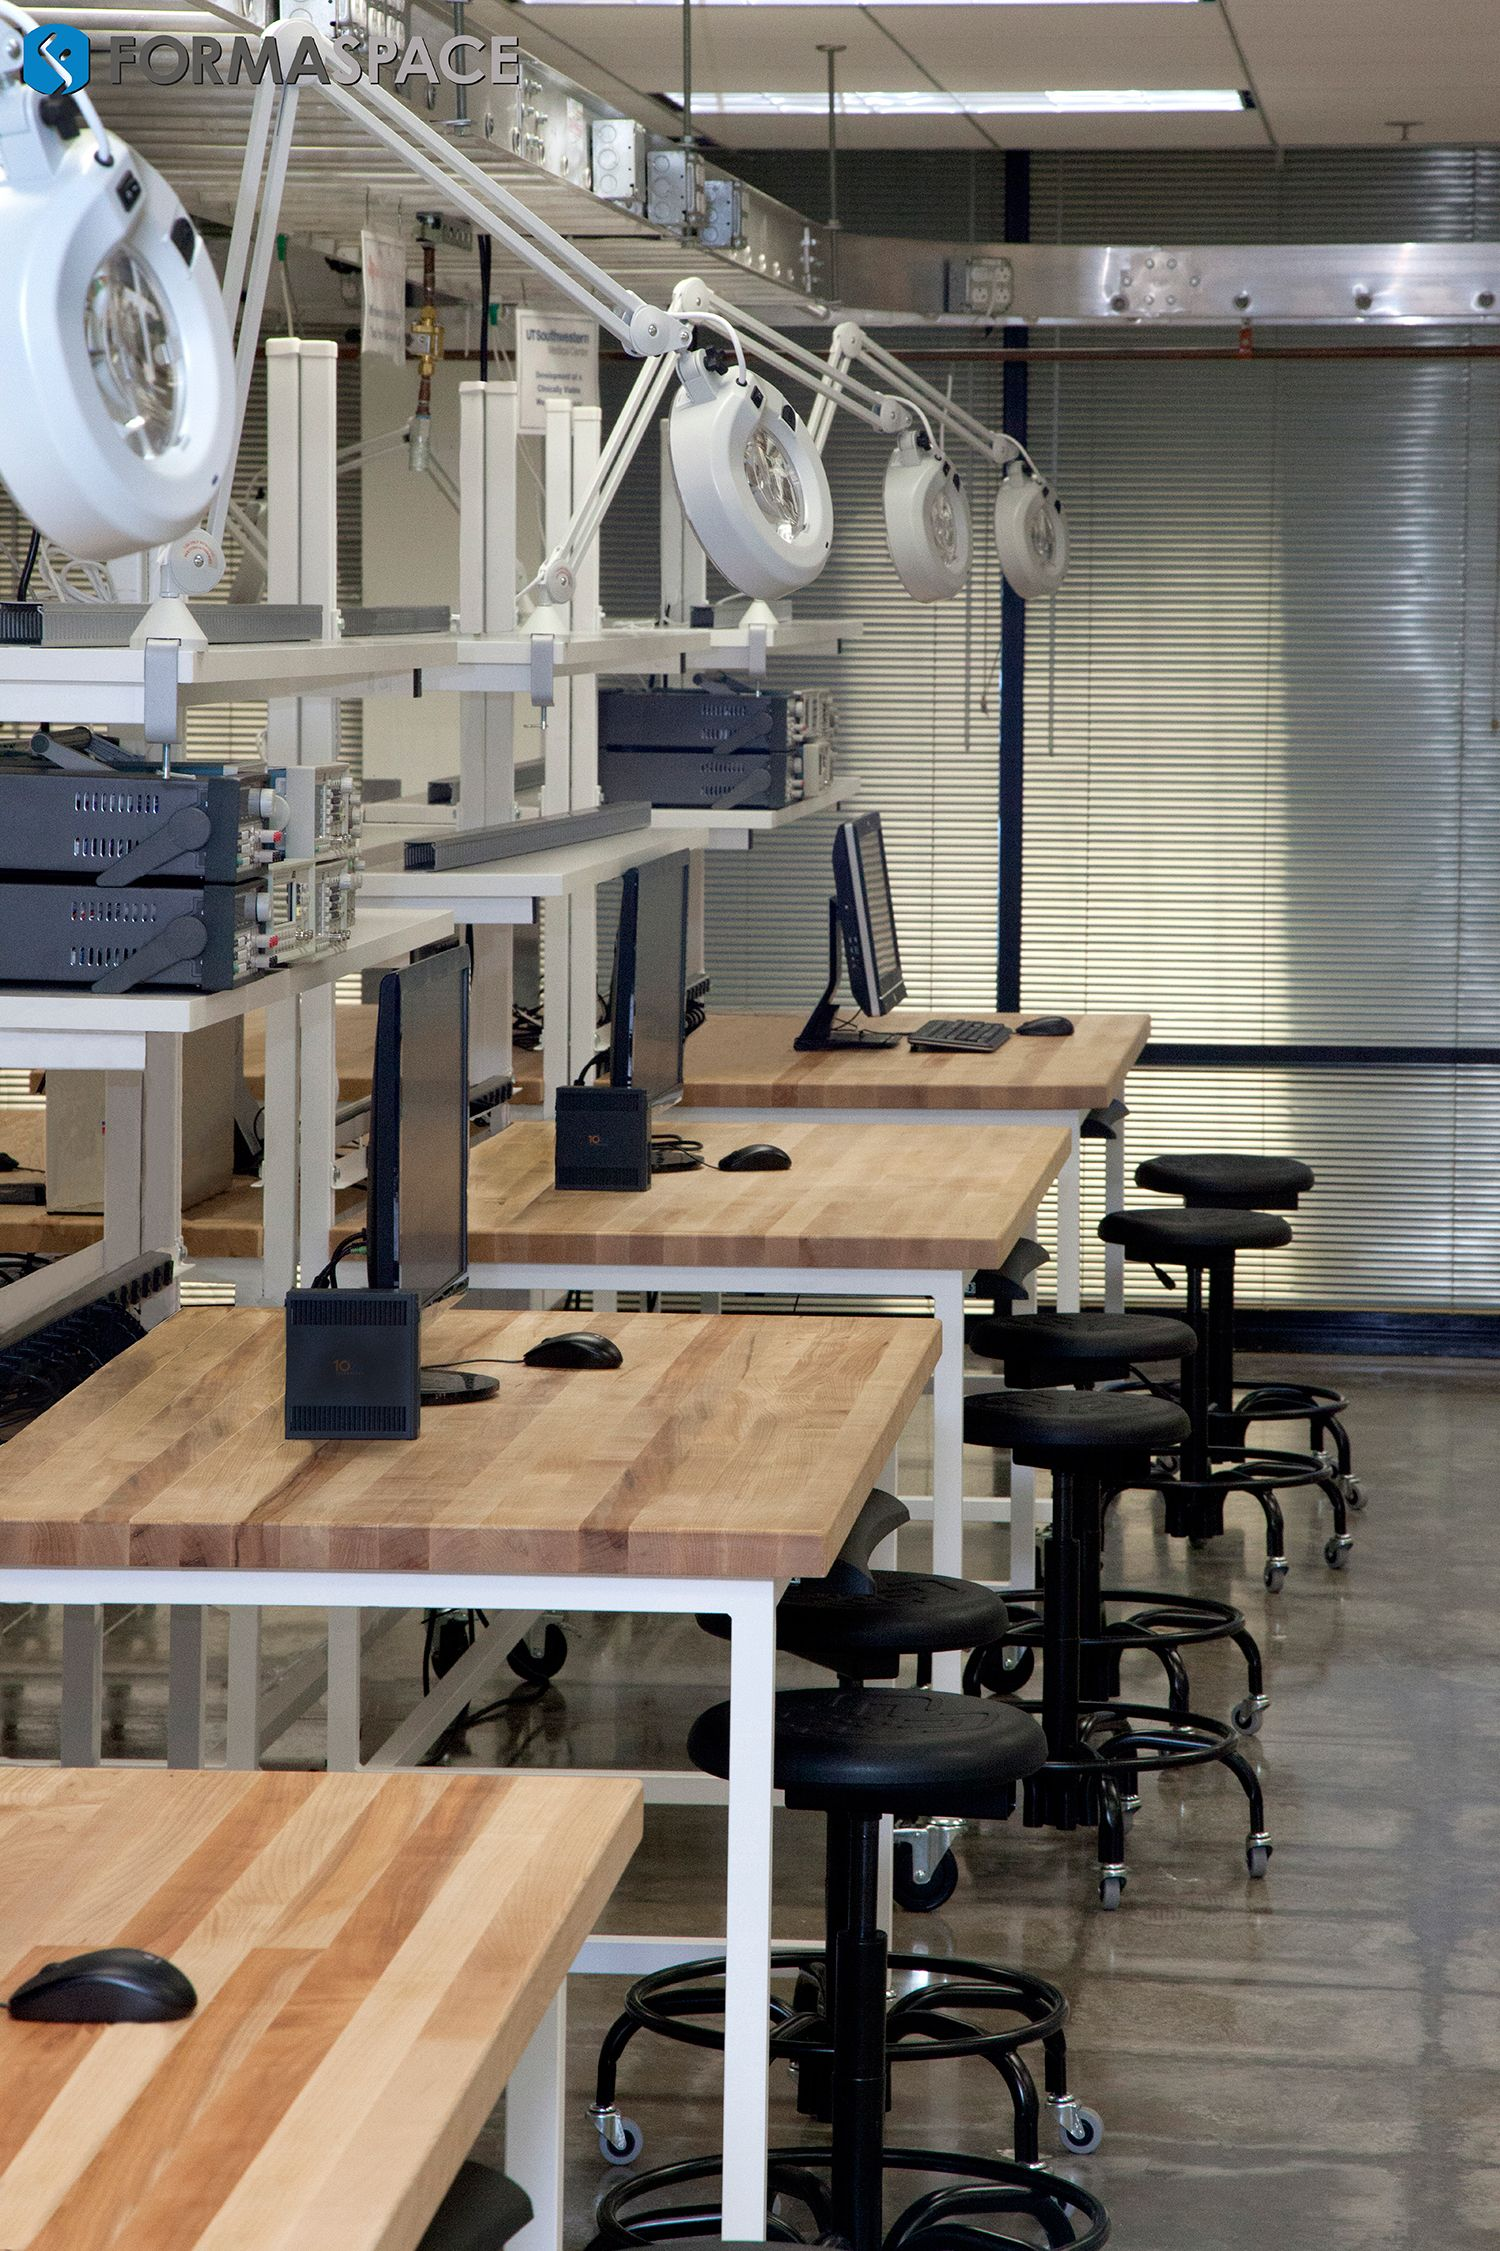 Formaspace S Workbench Gallery Features But A Few Of The Thousands Of Industrial W Electronics Lab Workbenches Custom Industrial Furniture Electronic Workbench